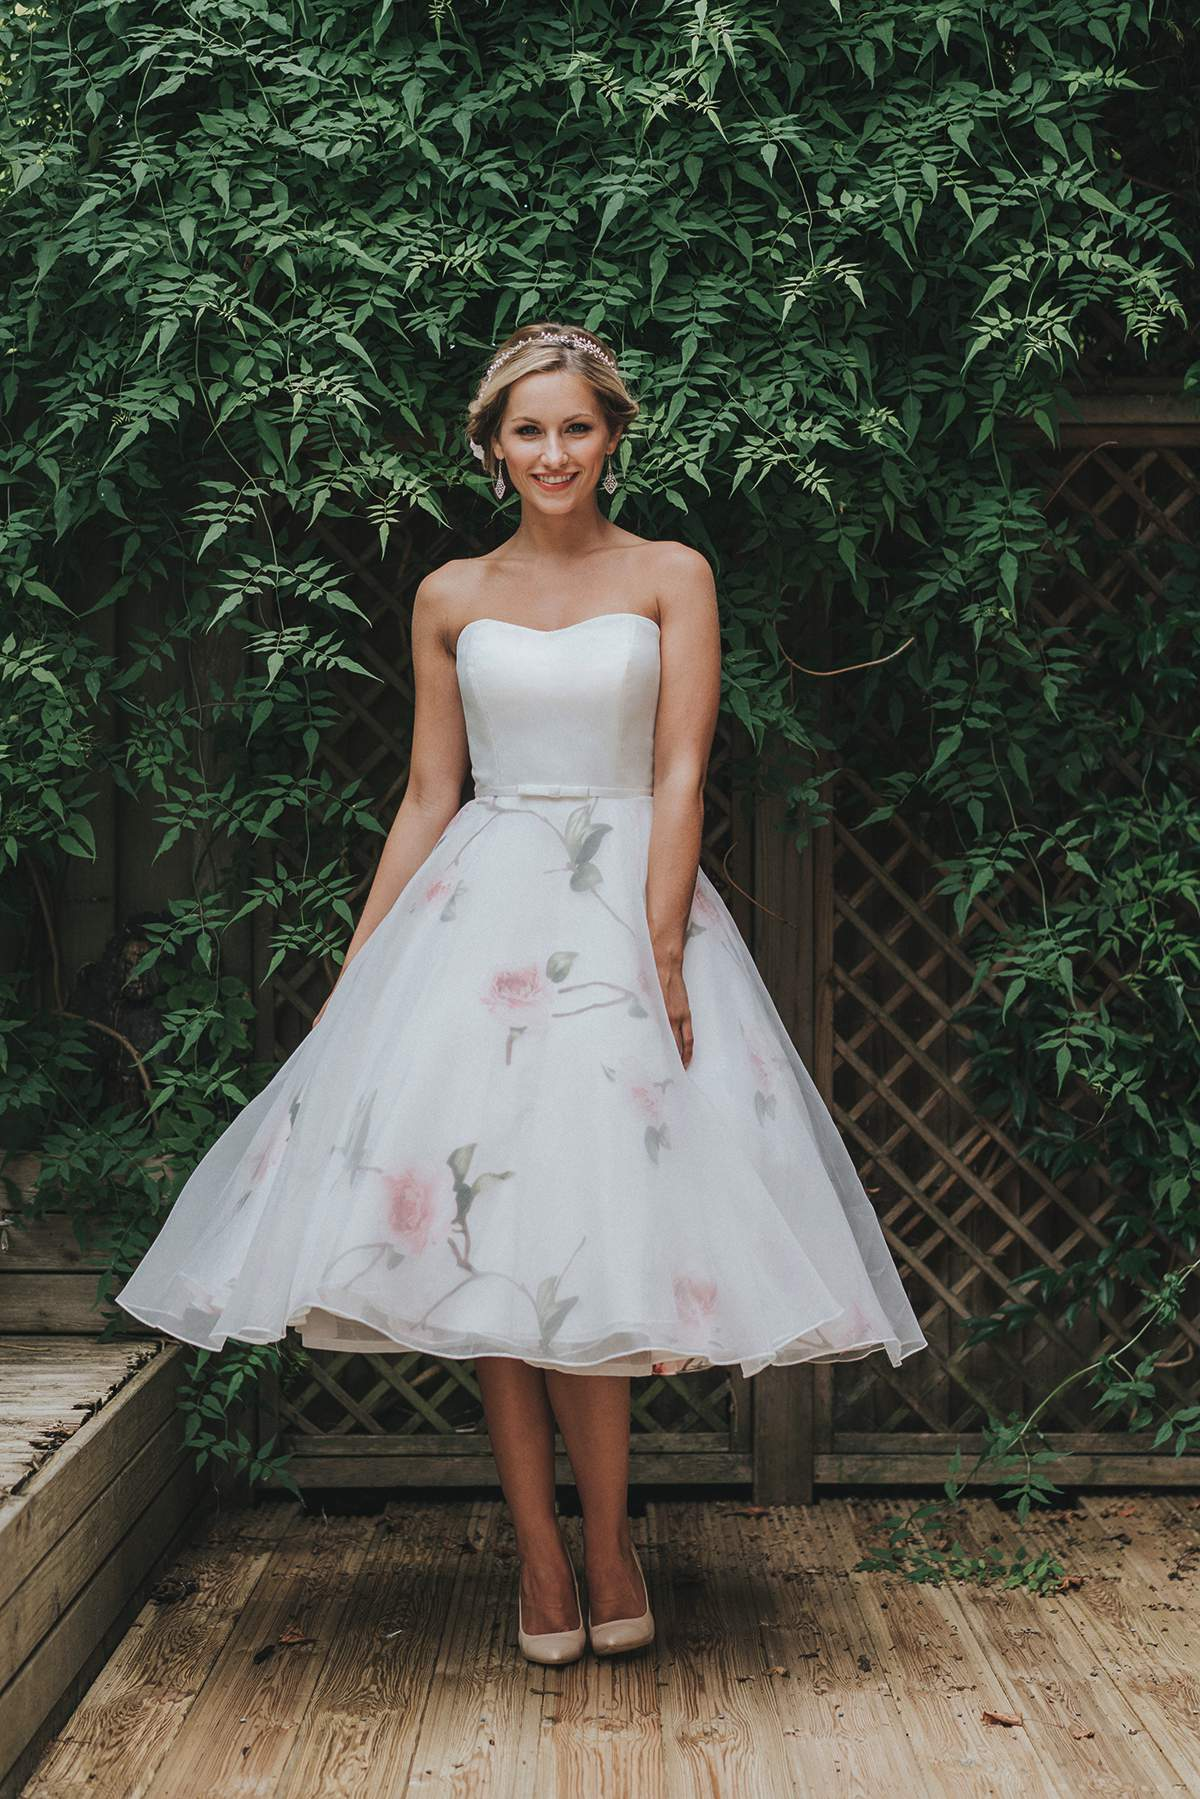 A 1950's-inspired floral dress from White Rose